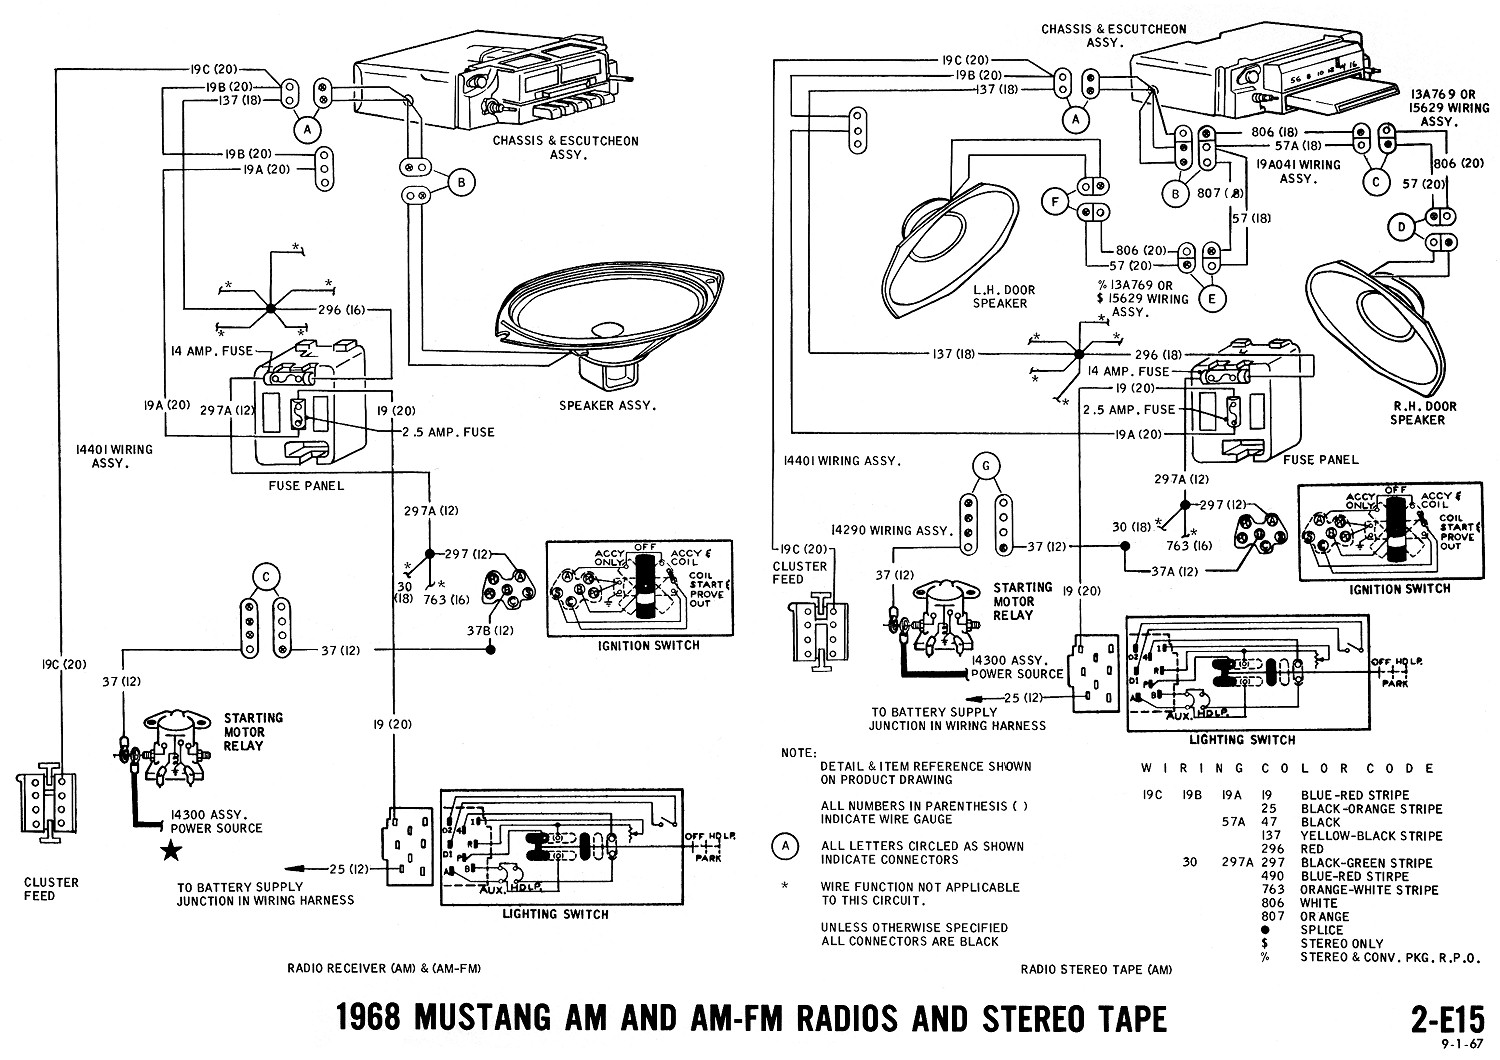 Mustang Stereo Wiring Diagram - wiring diagrams schematics